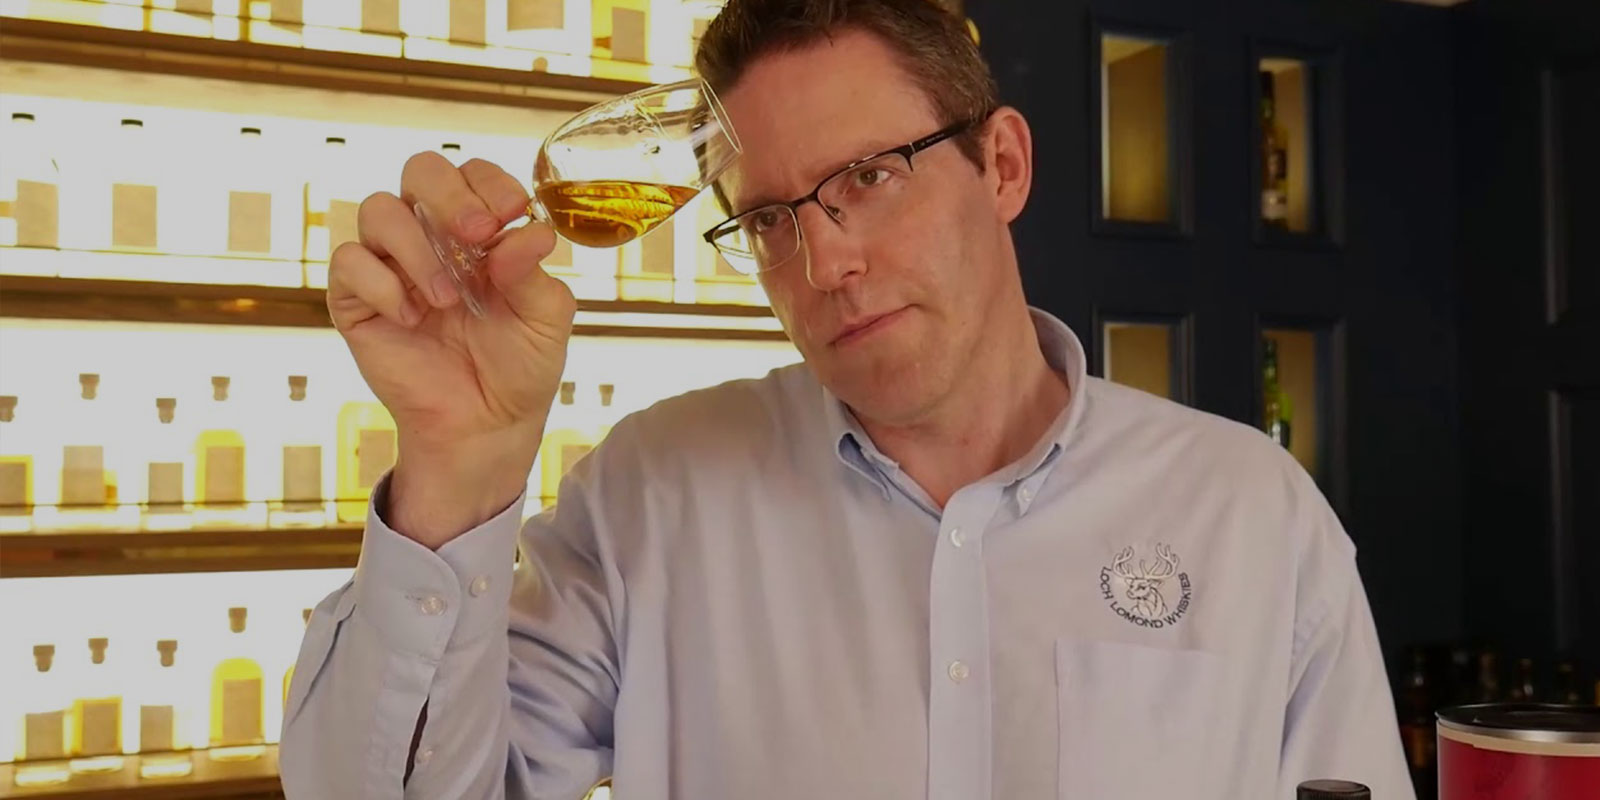 Michael Henry tasting experience